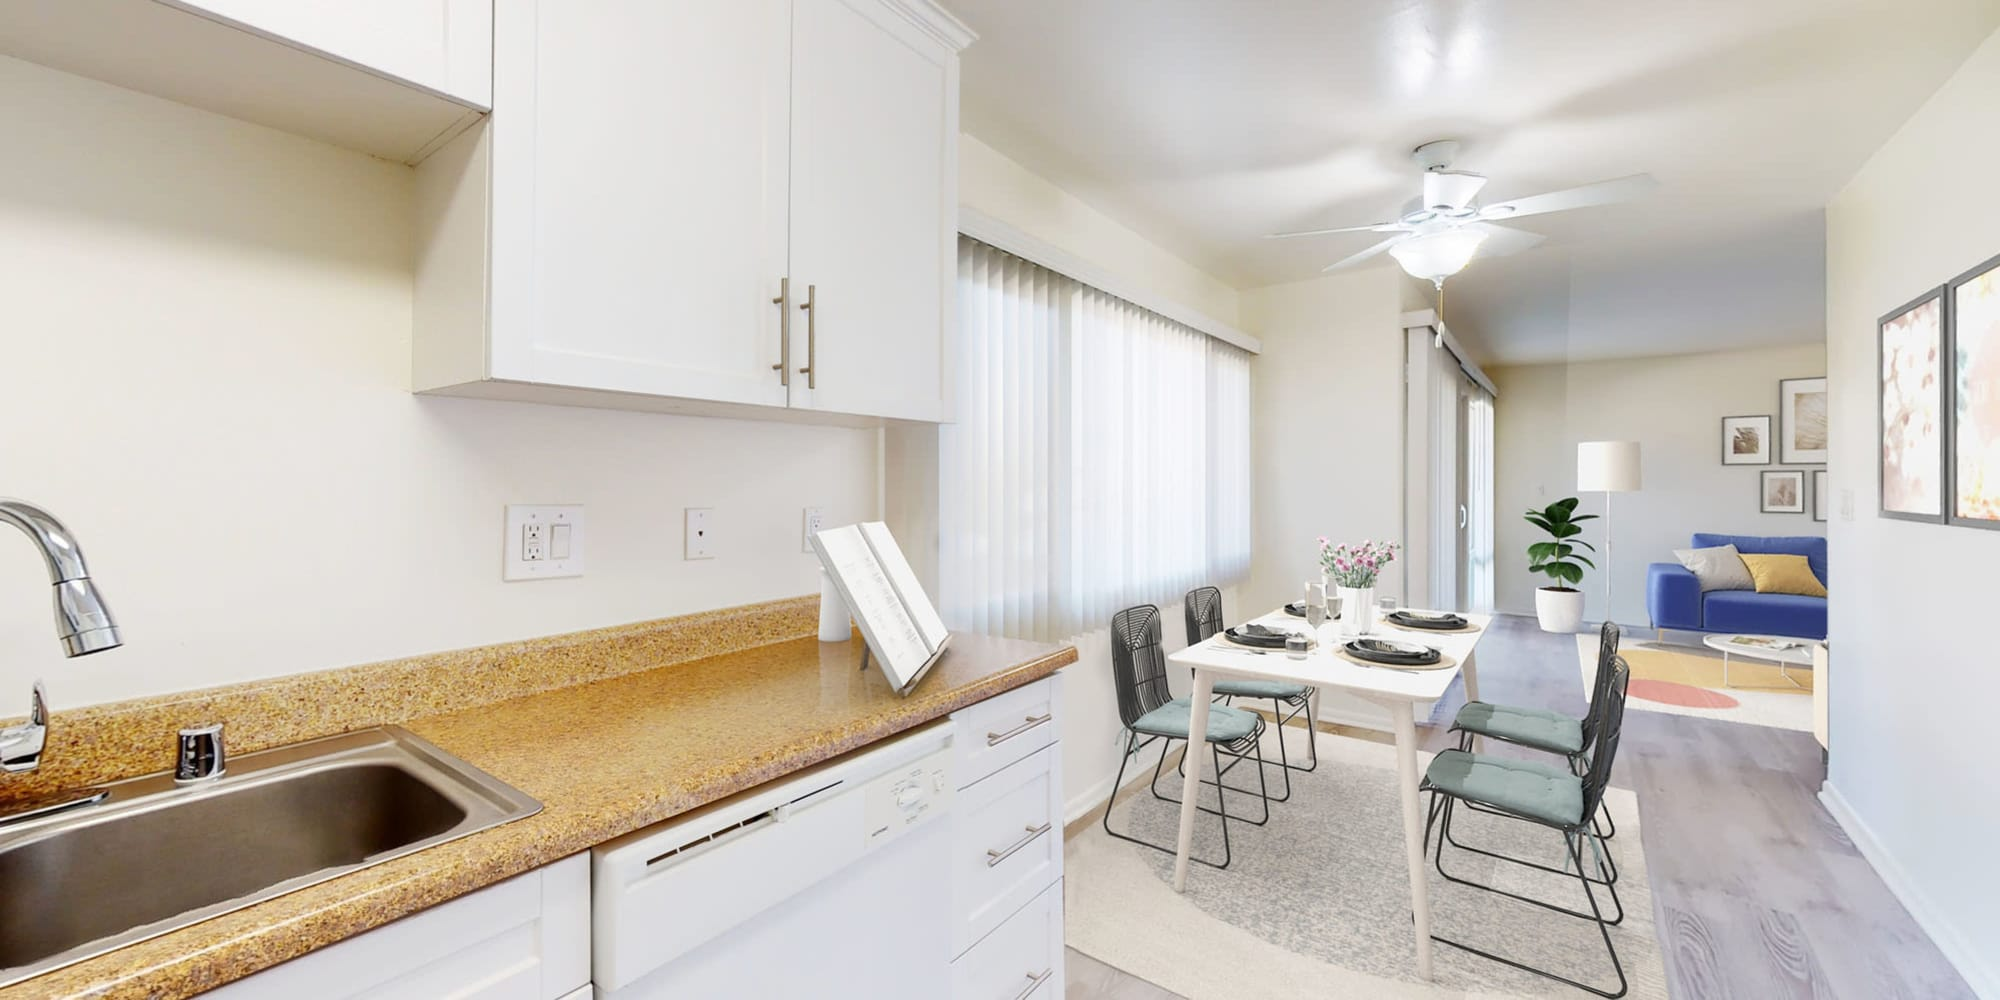 Two bedroom home's open-concept kitchen with white cabinetry looking into the dining area at West Park Village in Los Angeles, California